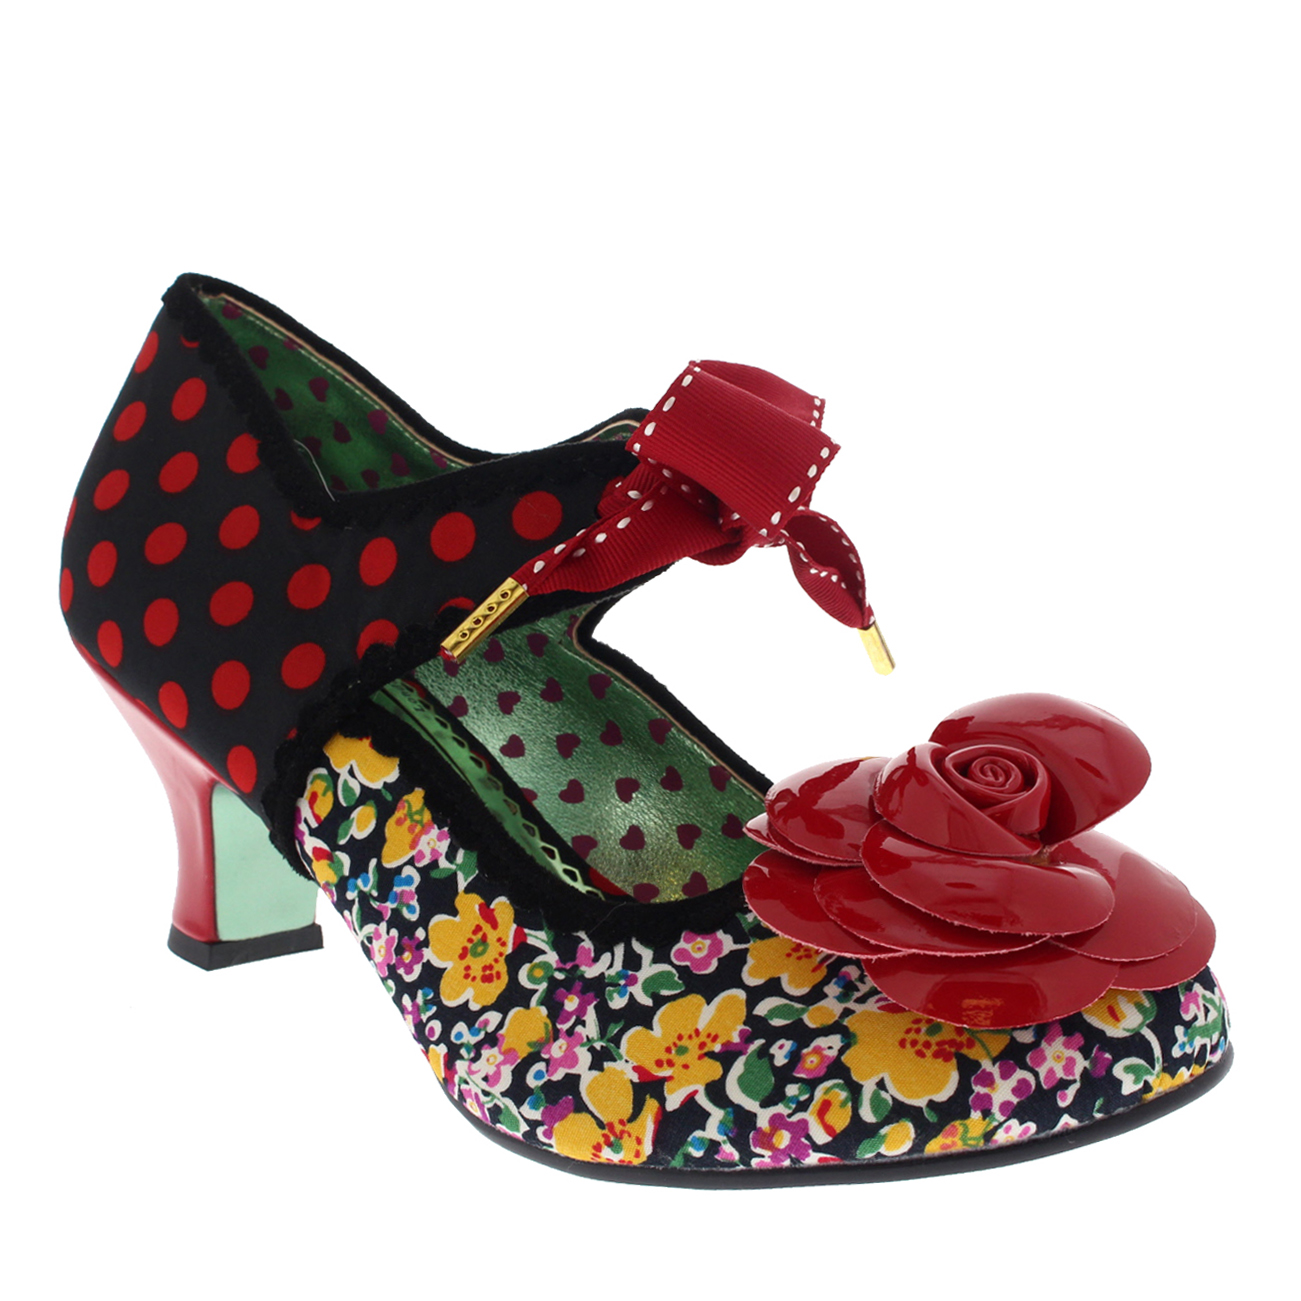 Damenschuhe Poetic Licence Summer Sands Polka Dot Court 5.5-11.5 Schuhes Kitten Heel US 5.5-11.5 Court 970d69